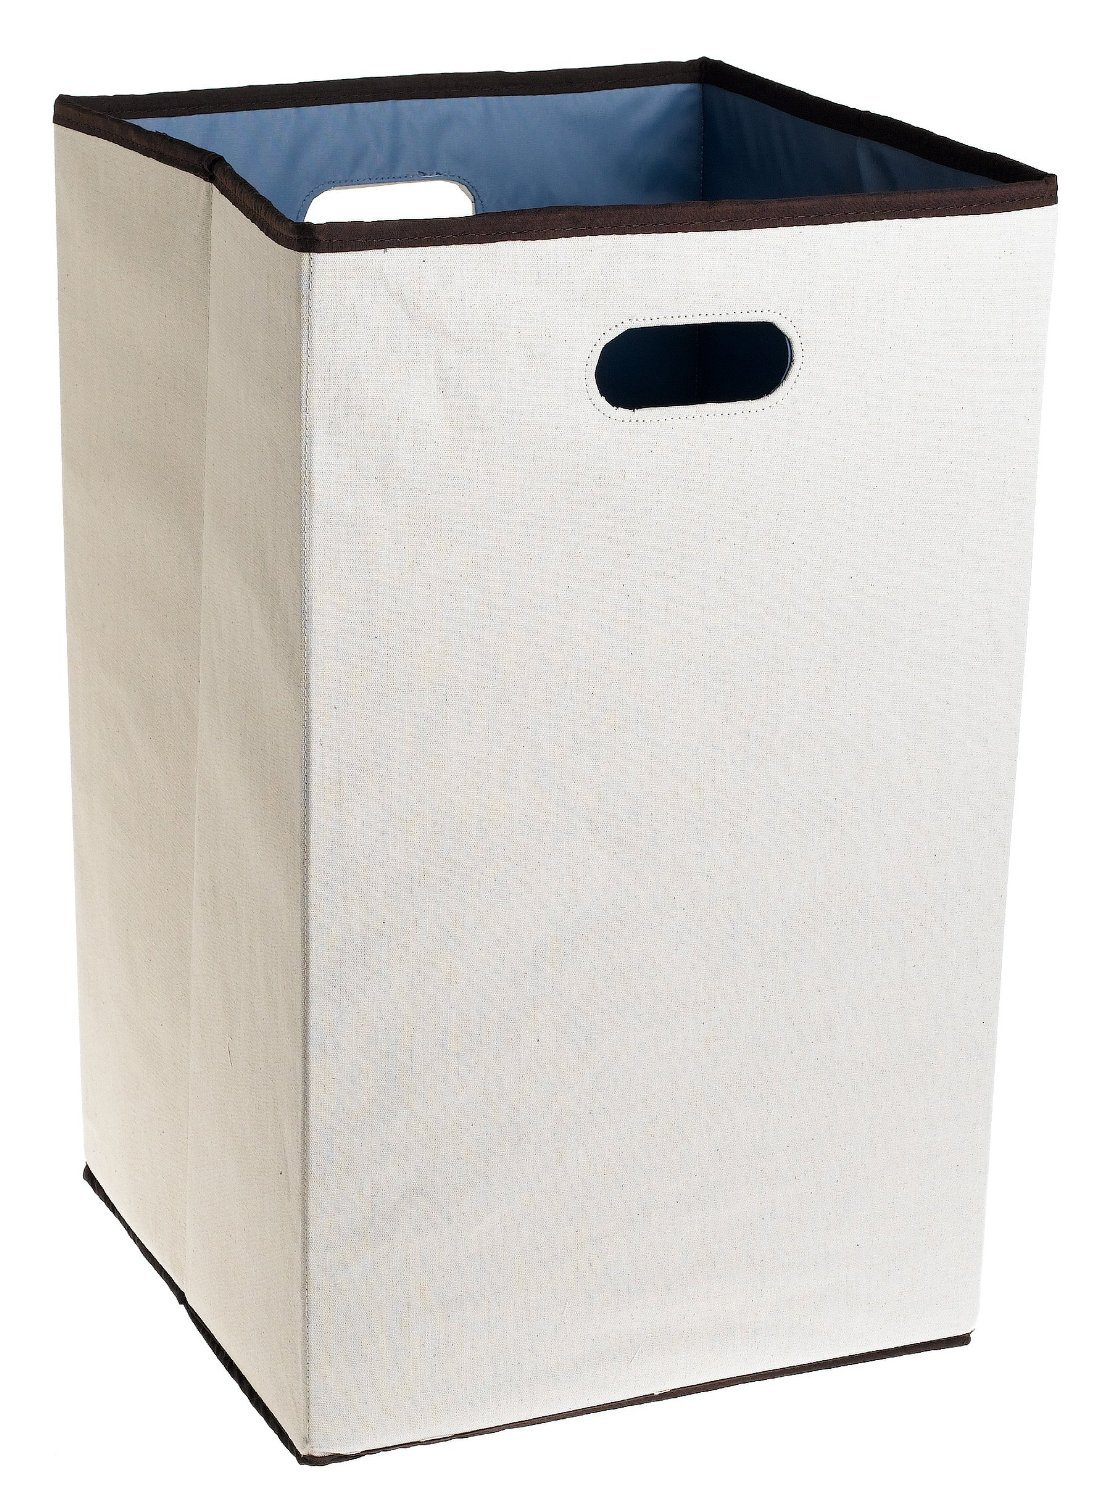 Amazon.com: Rubbermaid 4D06 Configurations 23 Inch Foldable Laundry Hamper,  Natural: Home U0026 Kitchen